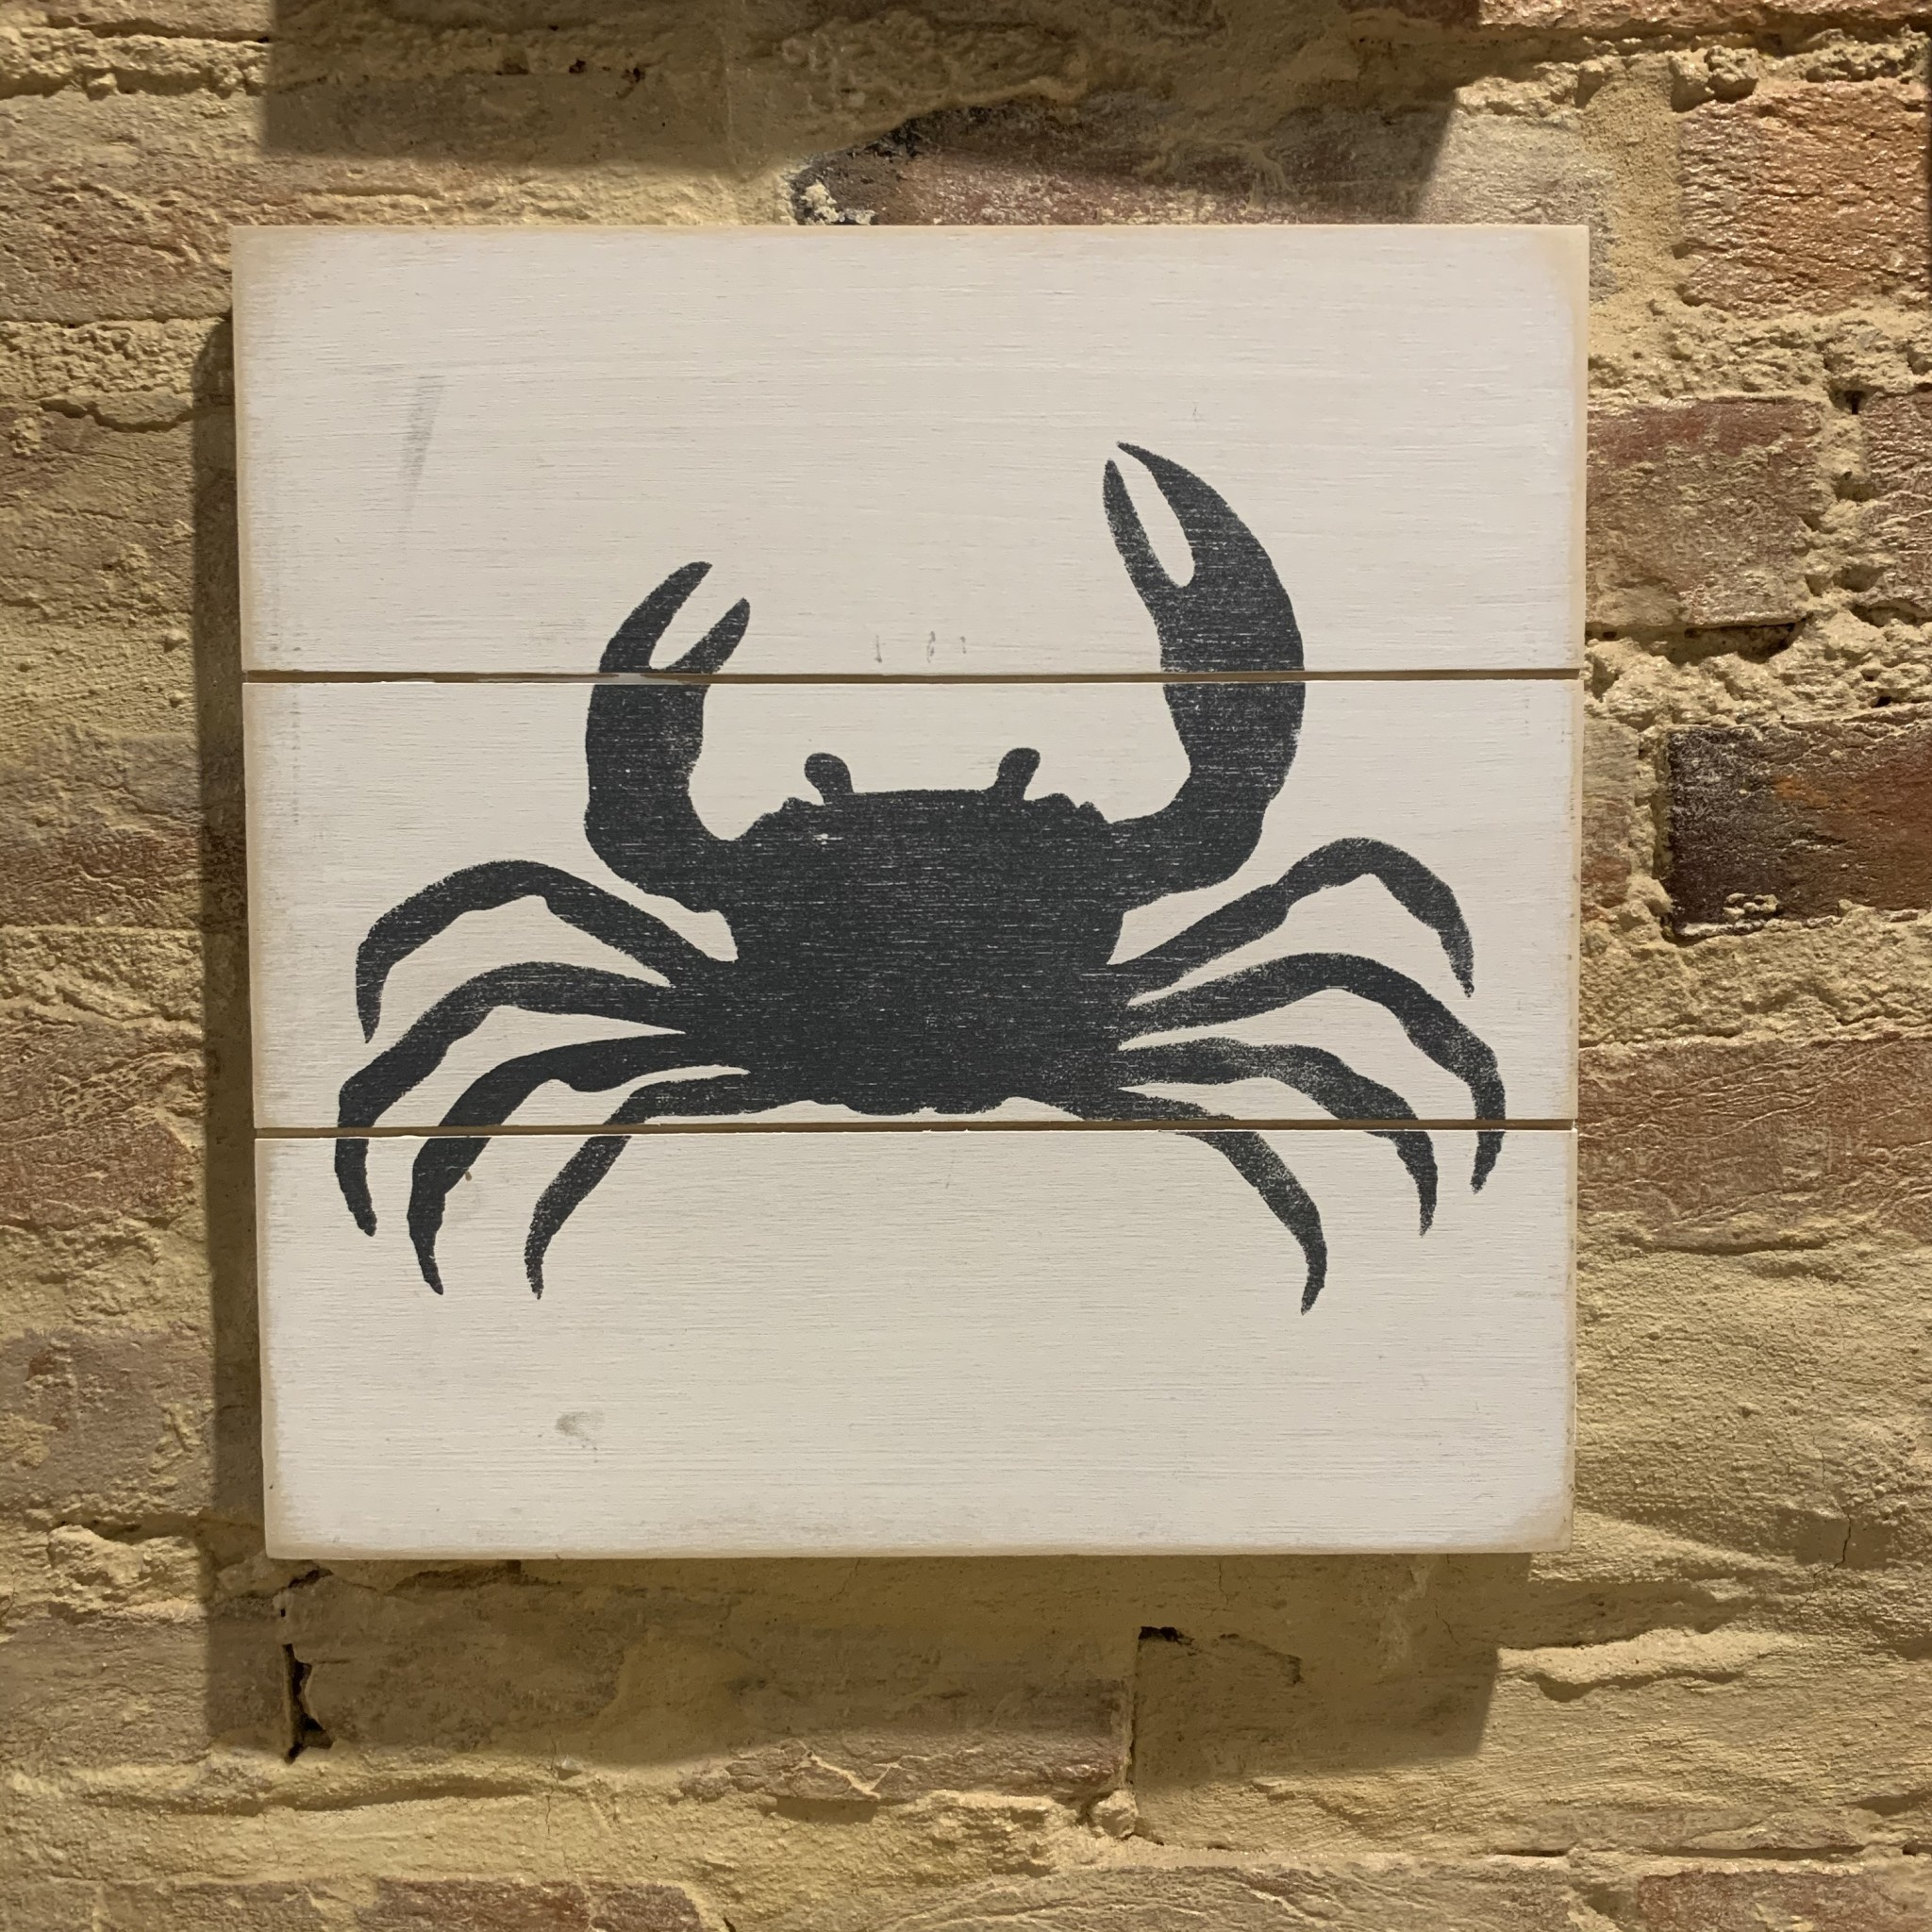 Designs by E.A.H. Slatted Stamped Crab